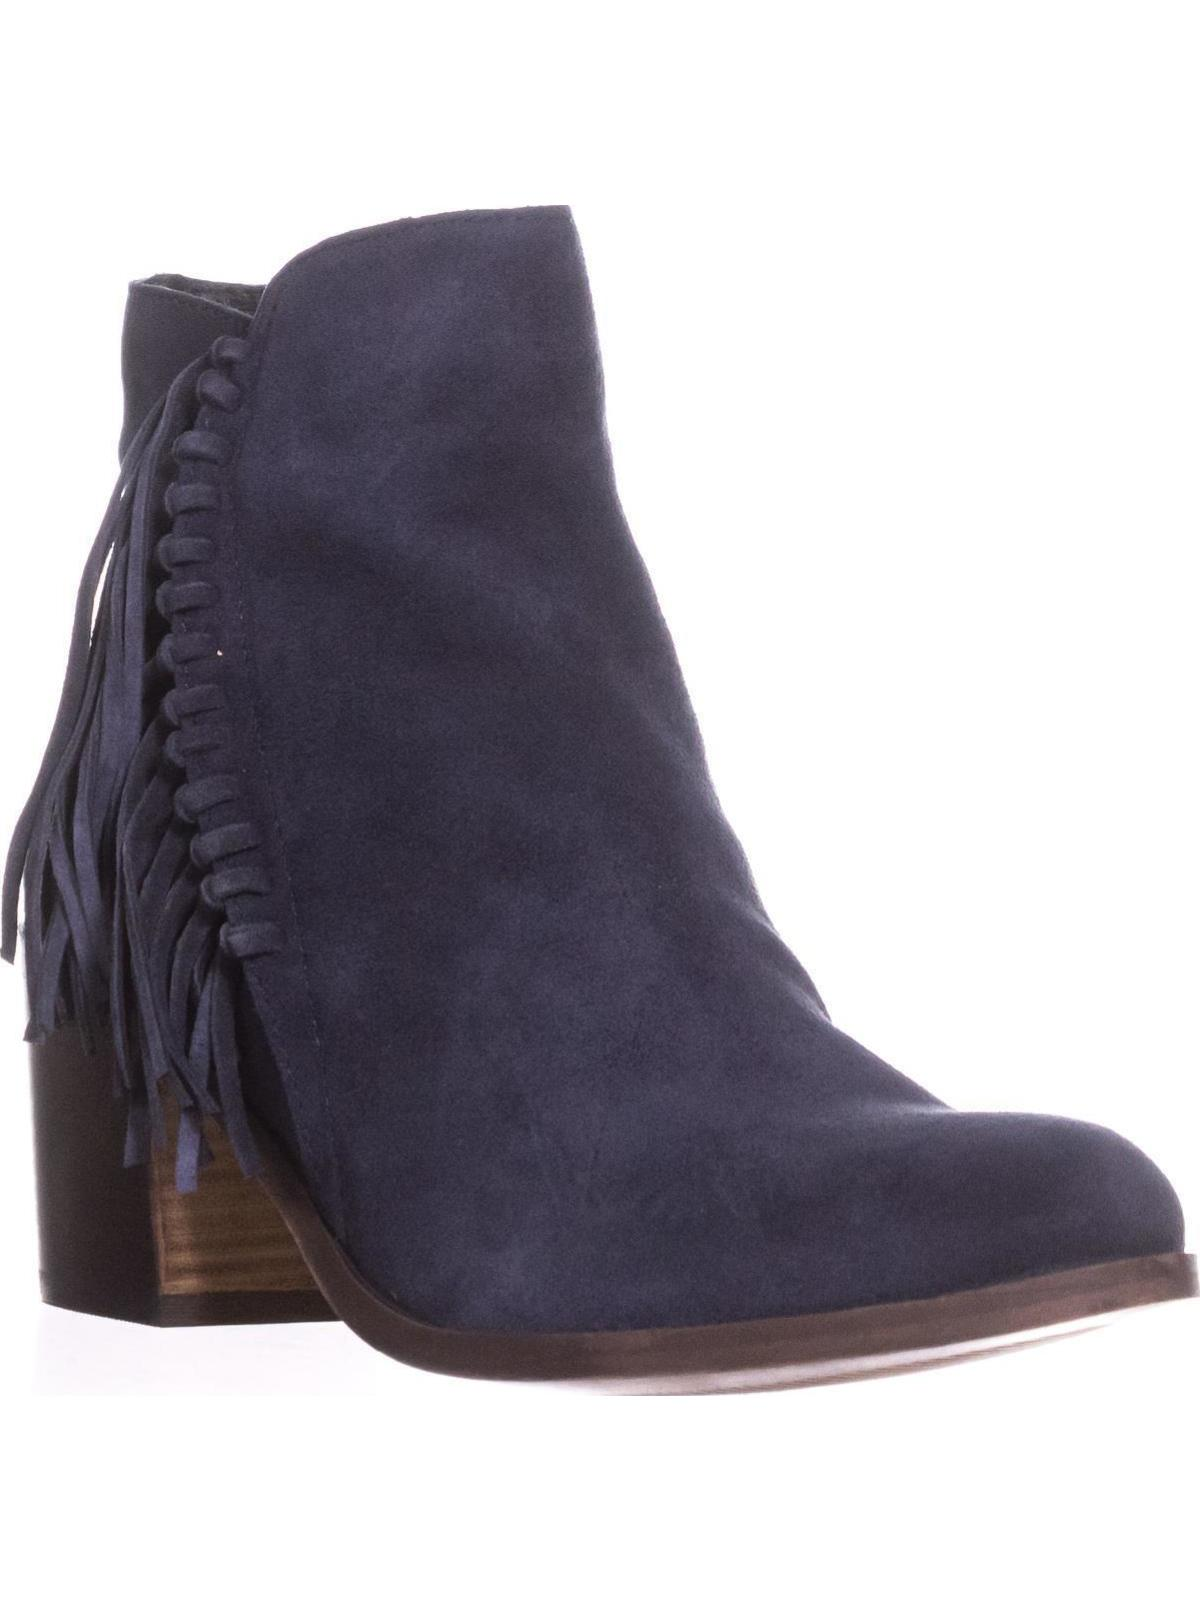 c692f6b20e Kenneth Cole Reaction Boots Womens - Image Collections Boot